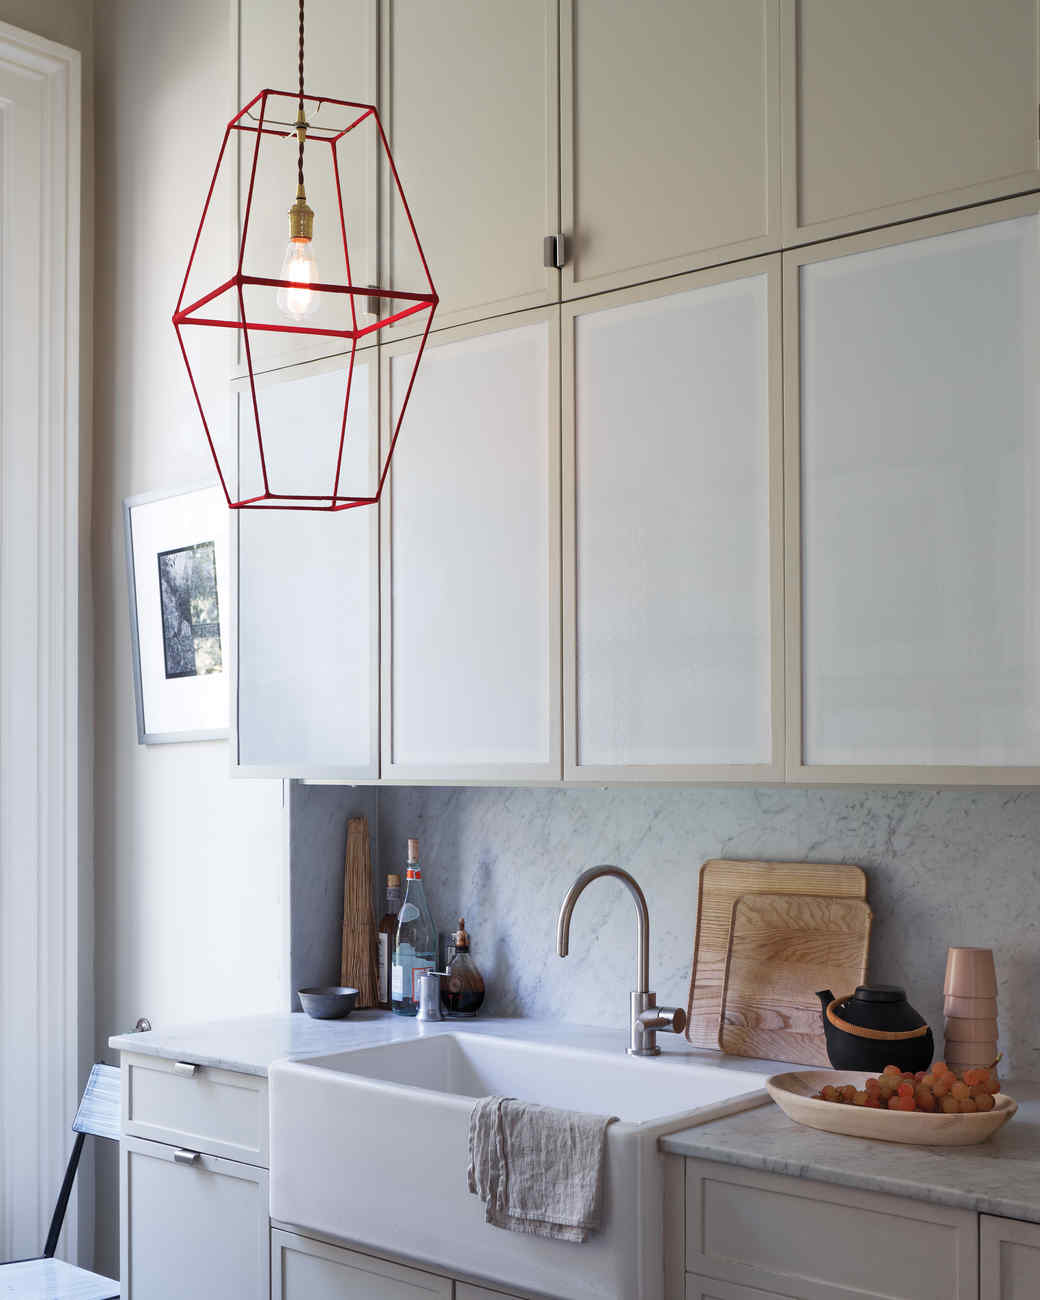 Lamp and shade projects martha stewart photography lucas allen aloadofball Choice Image